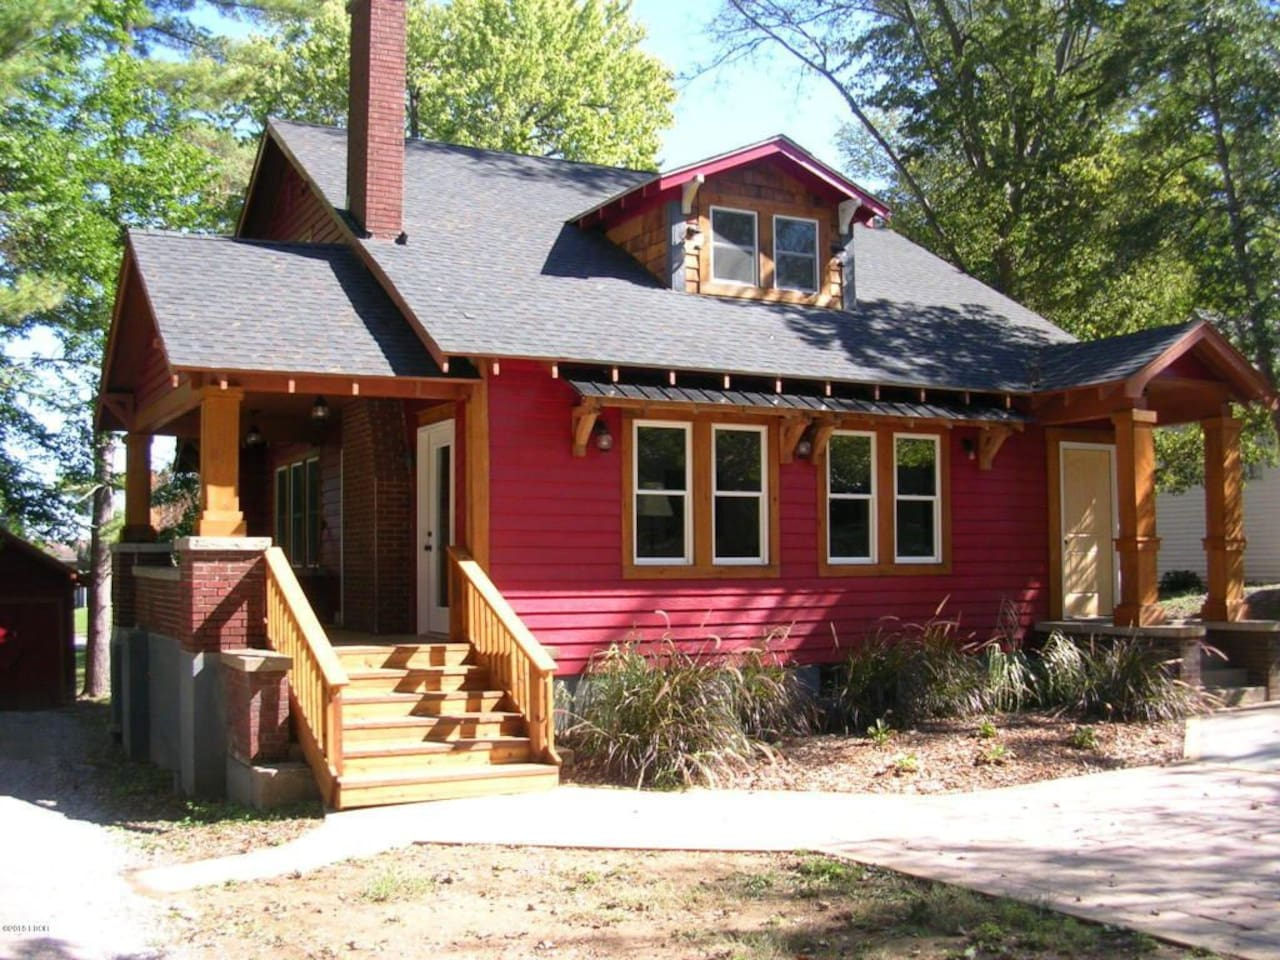 Newly remodeled Rustic town home. This home is located in Vienna on a quiet street, near the historic town square. It is a short drive or walk to the local restaurants. A huge plus is, the Shawnee national forest surrounds this area!